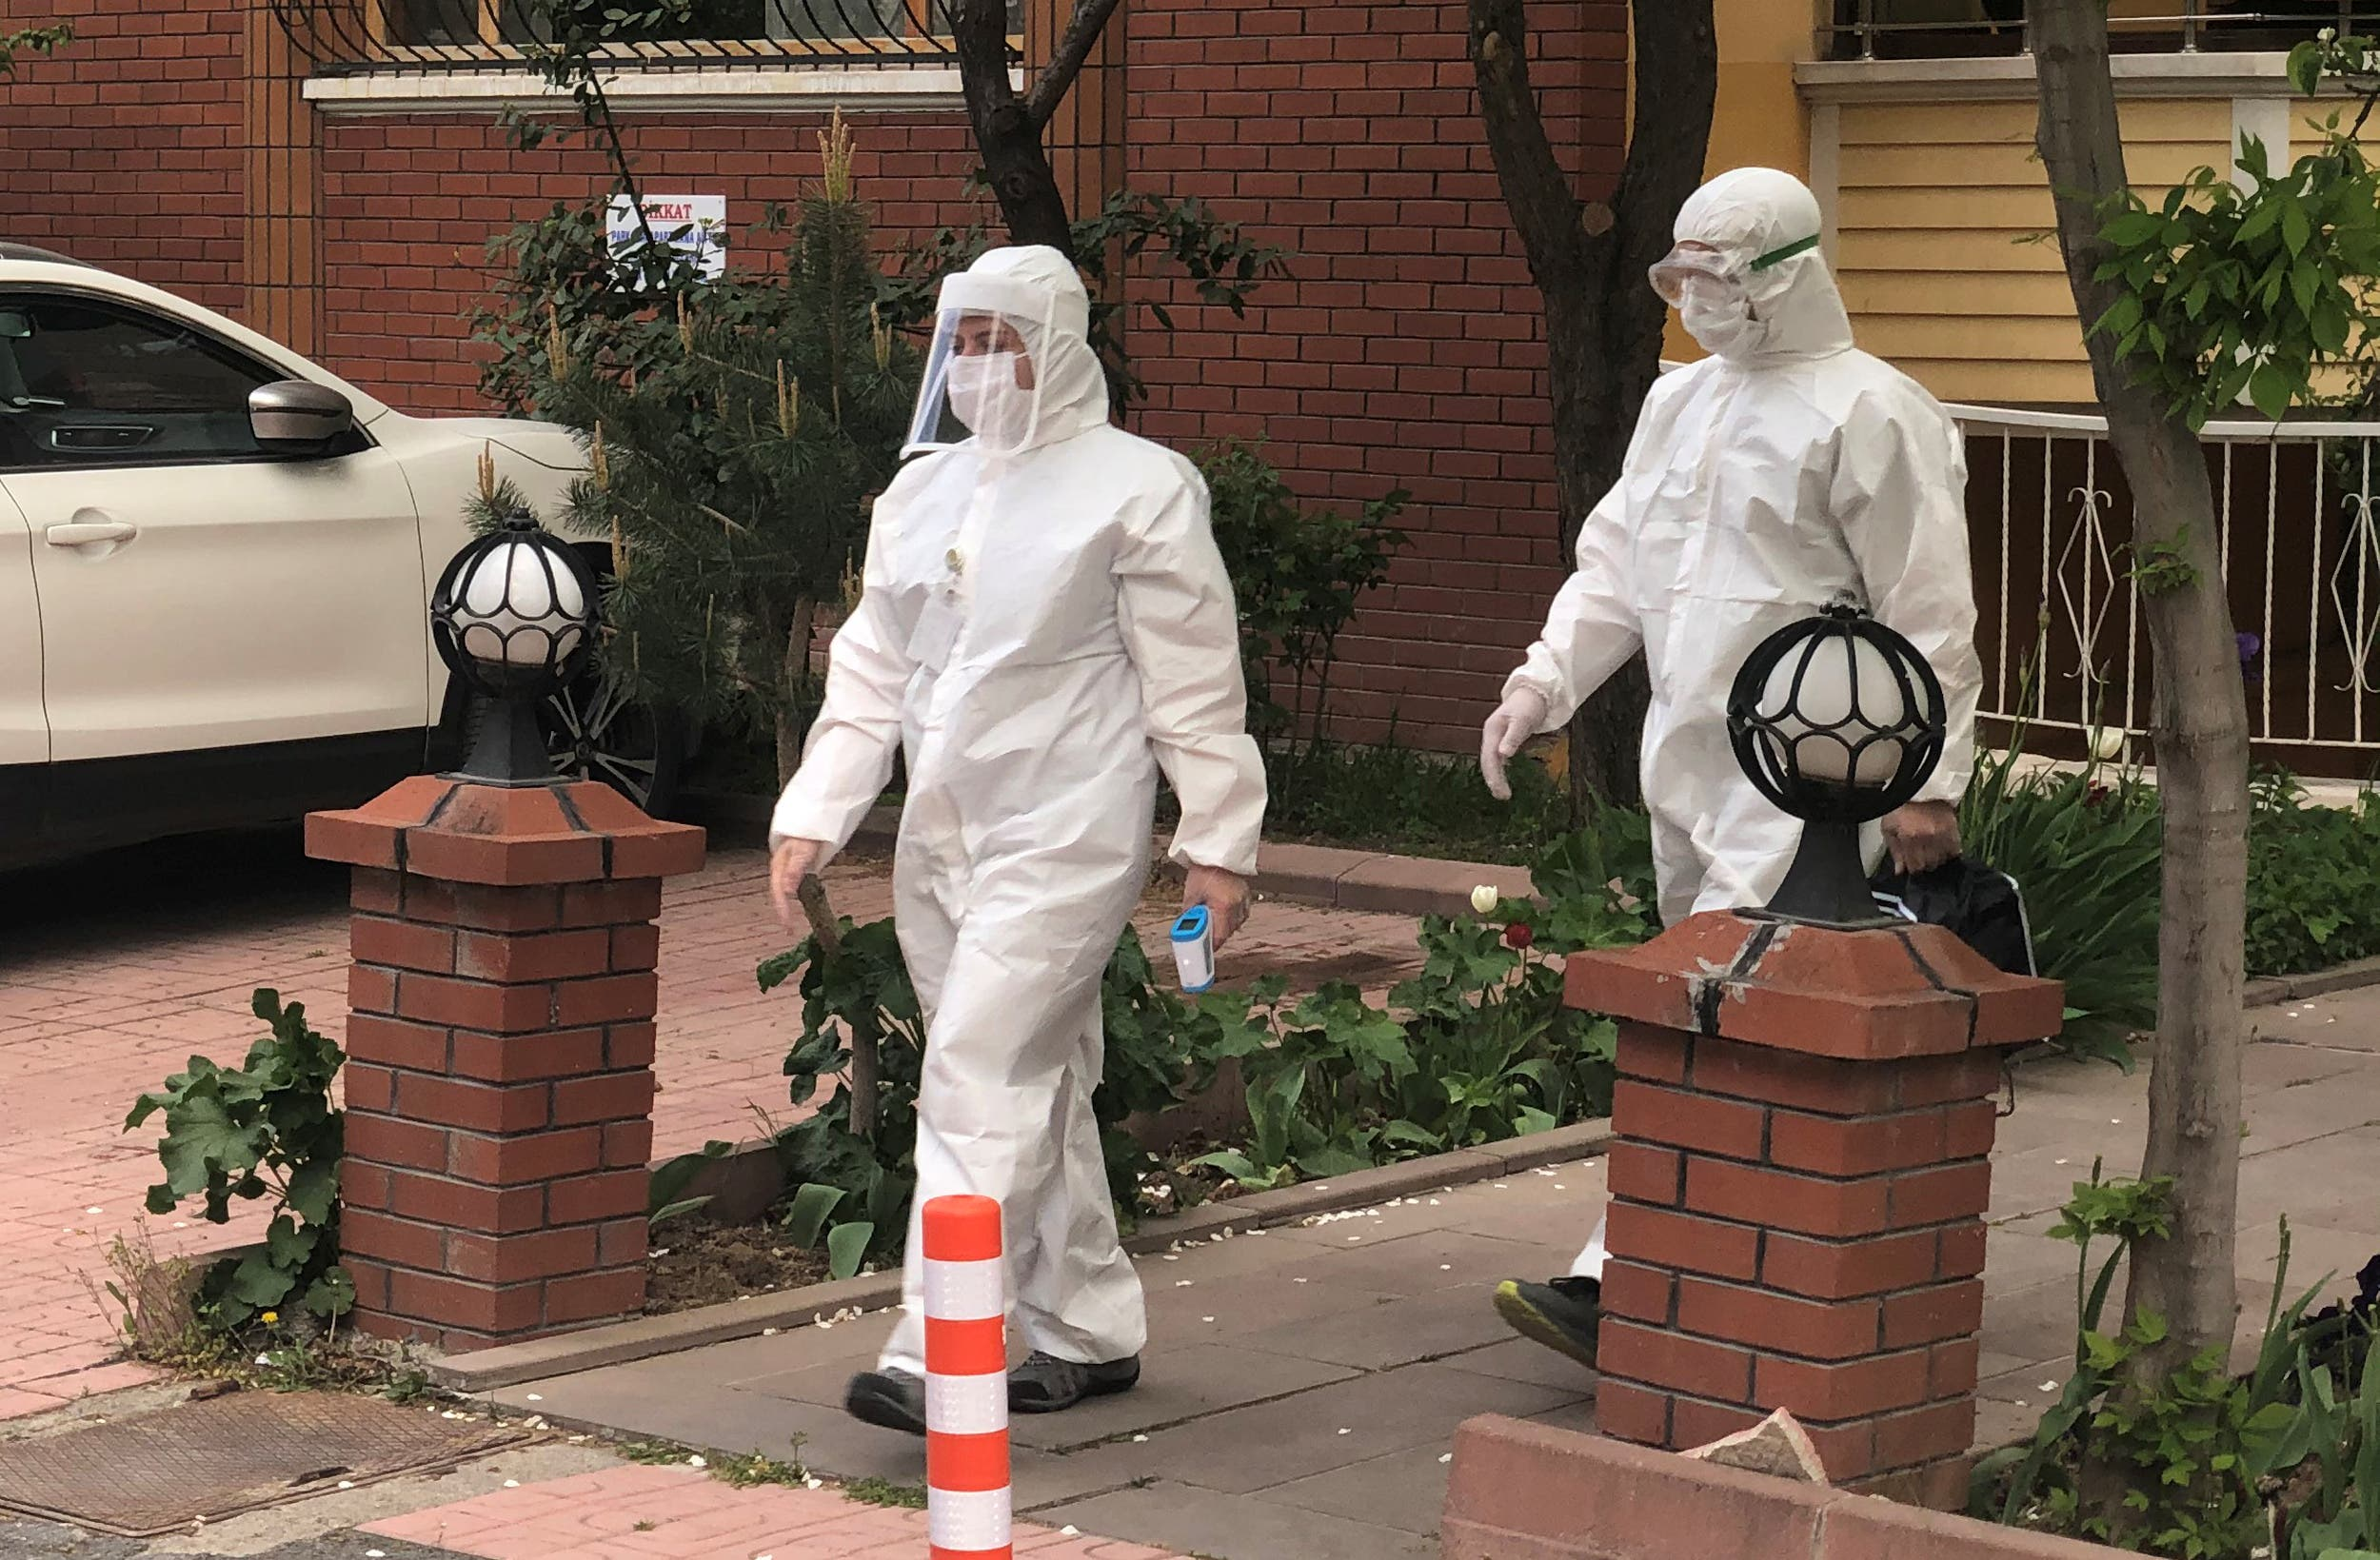 Medics wearing protective suits, members of Turkish Health Ministry's coronavirus contact tracing team, visit a home to check a suspected coronavirus disease (COVID-19) case in Ankara, Turkey, April 27, 2020. (Reuters)